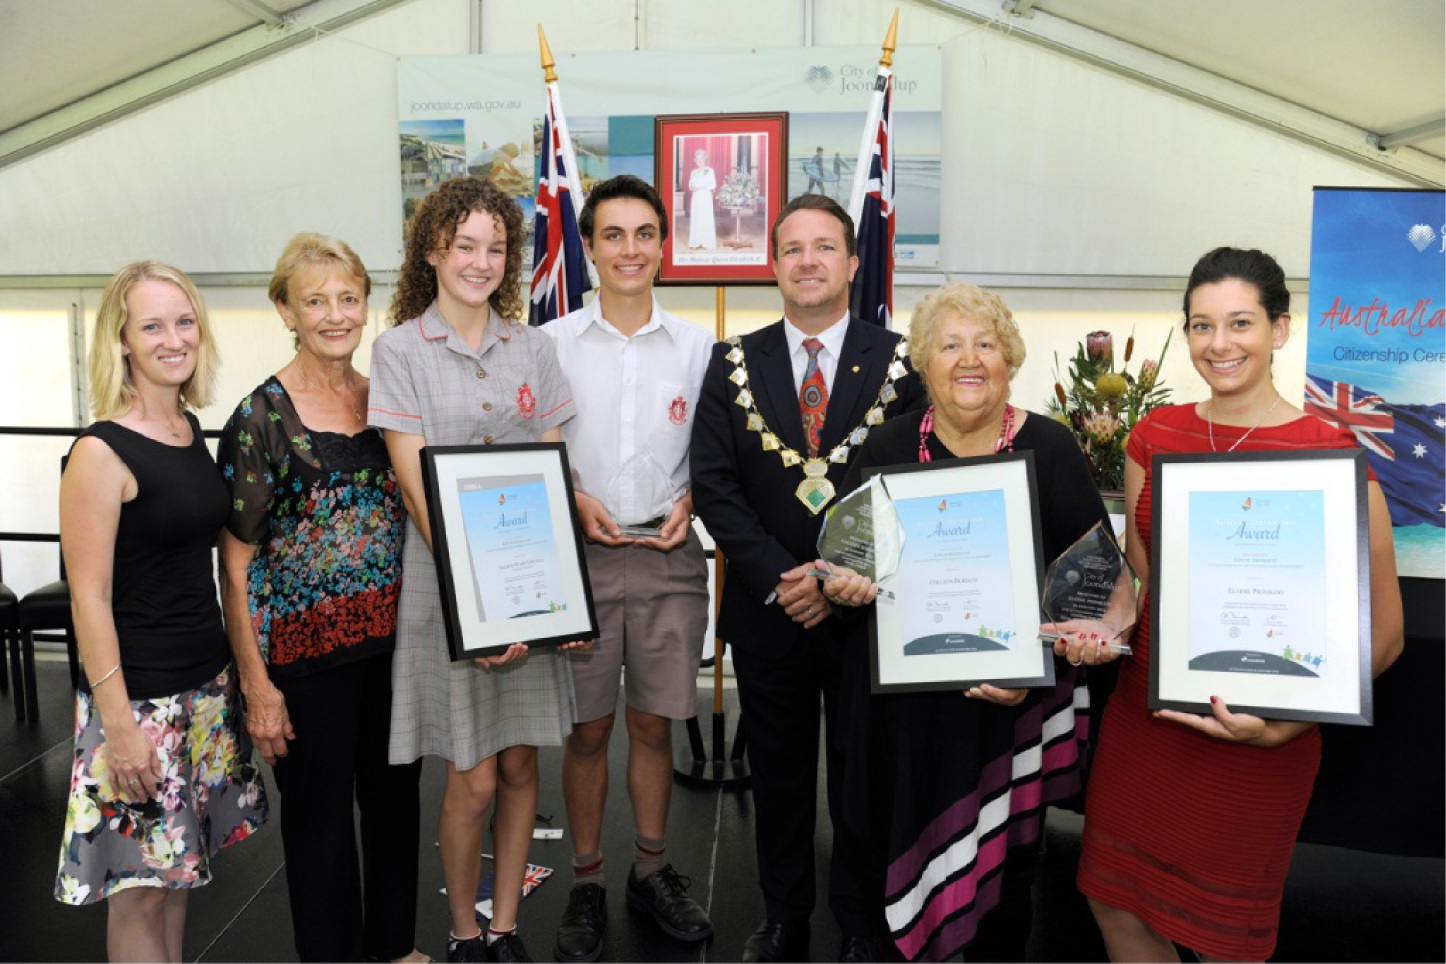 Deserving recognition: Sacred Heart College's Michelle Moreton, Rosanna Highwood, Matthew Kolomyjec and Meadbh Byrne, Joondalup Mayor Troy Pickard, Colleen Burgess and Elodie Prinsloo. Picture: Chris Kershaw